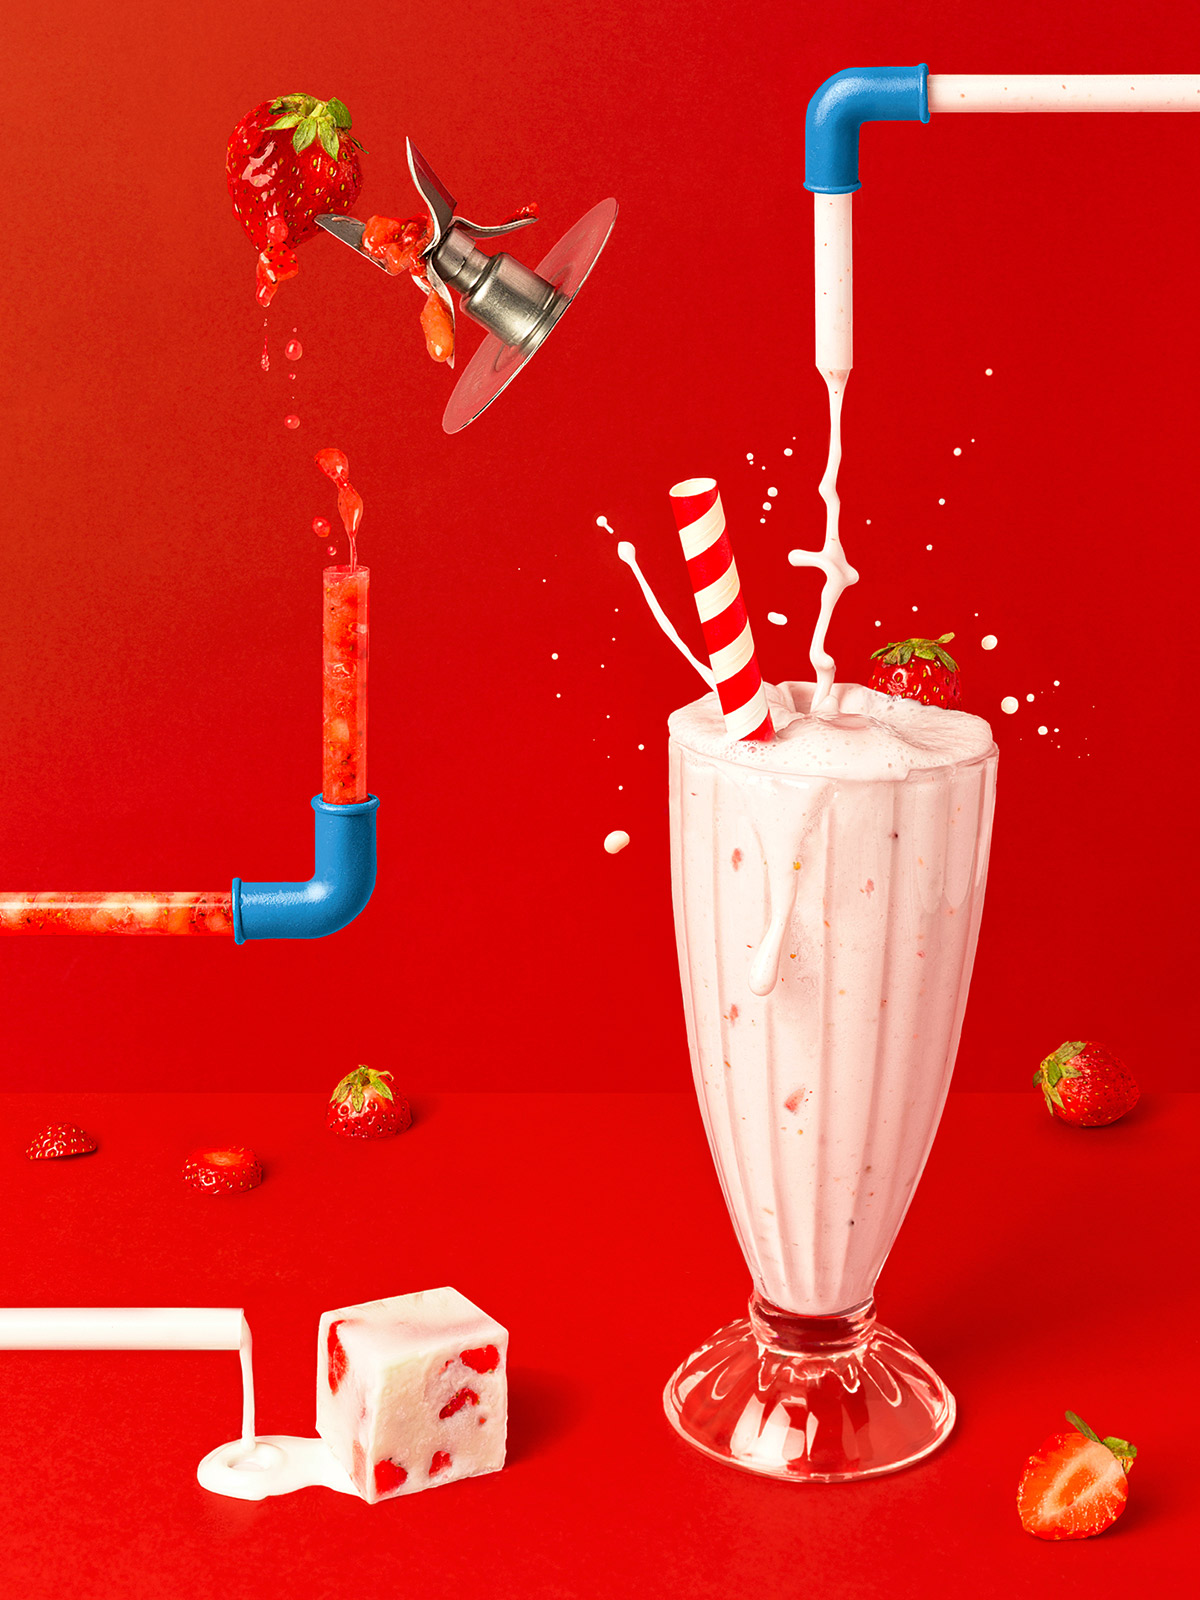 Lapsus-Still-Life-Photography-Sweetduction-Berryful-Delight-3x4-1200px